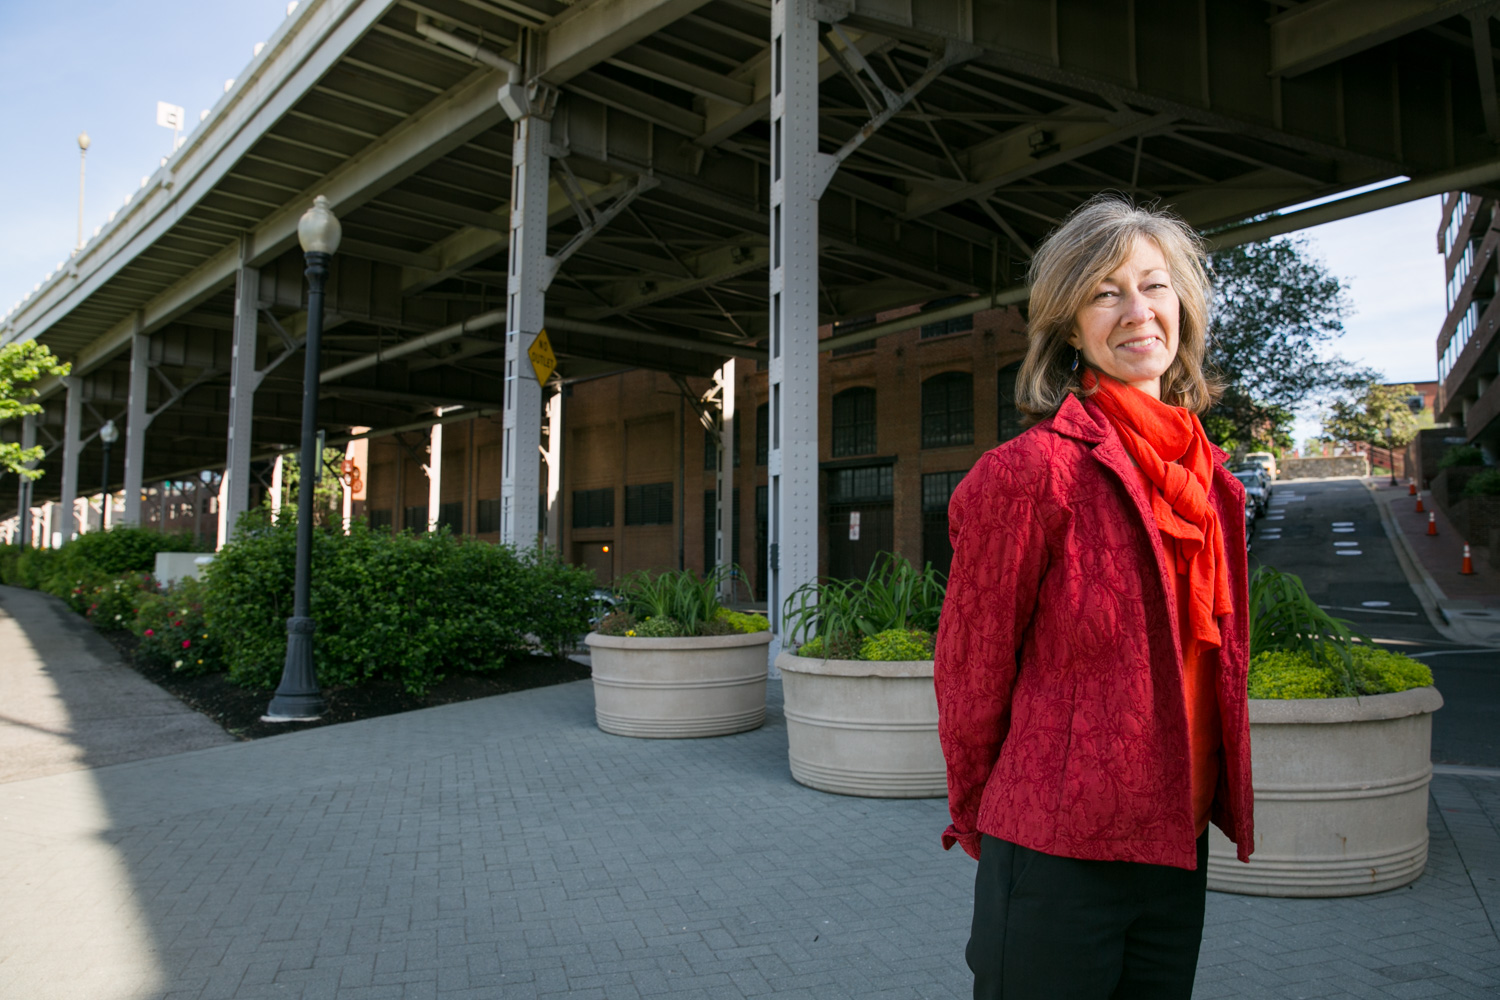 On May 14, 2015, Anita van Breda poses for a portrait at the Georgetown Waterfront Park in Washington, D.C. (United States of America). Anita works to ensure WWF conservation and reconstruction efforts are applied to areas impacted by disaster.